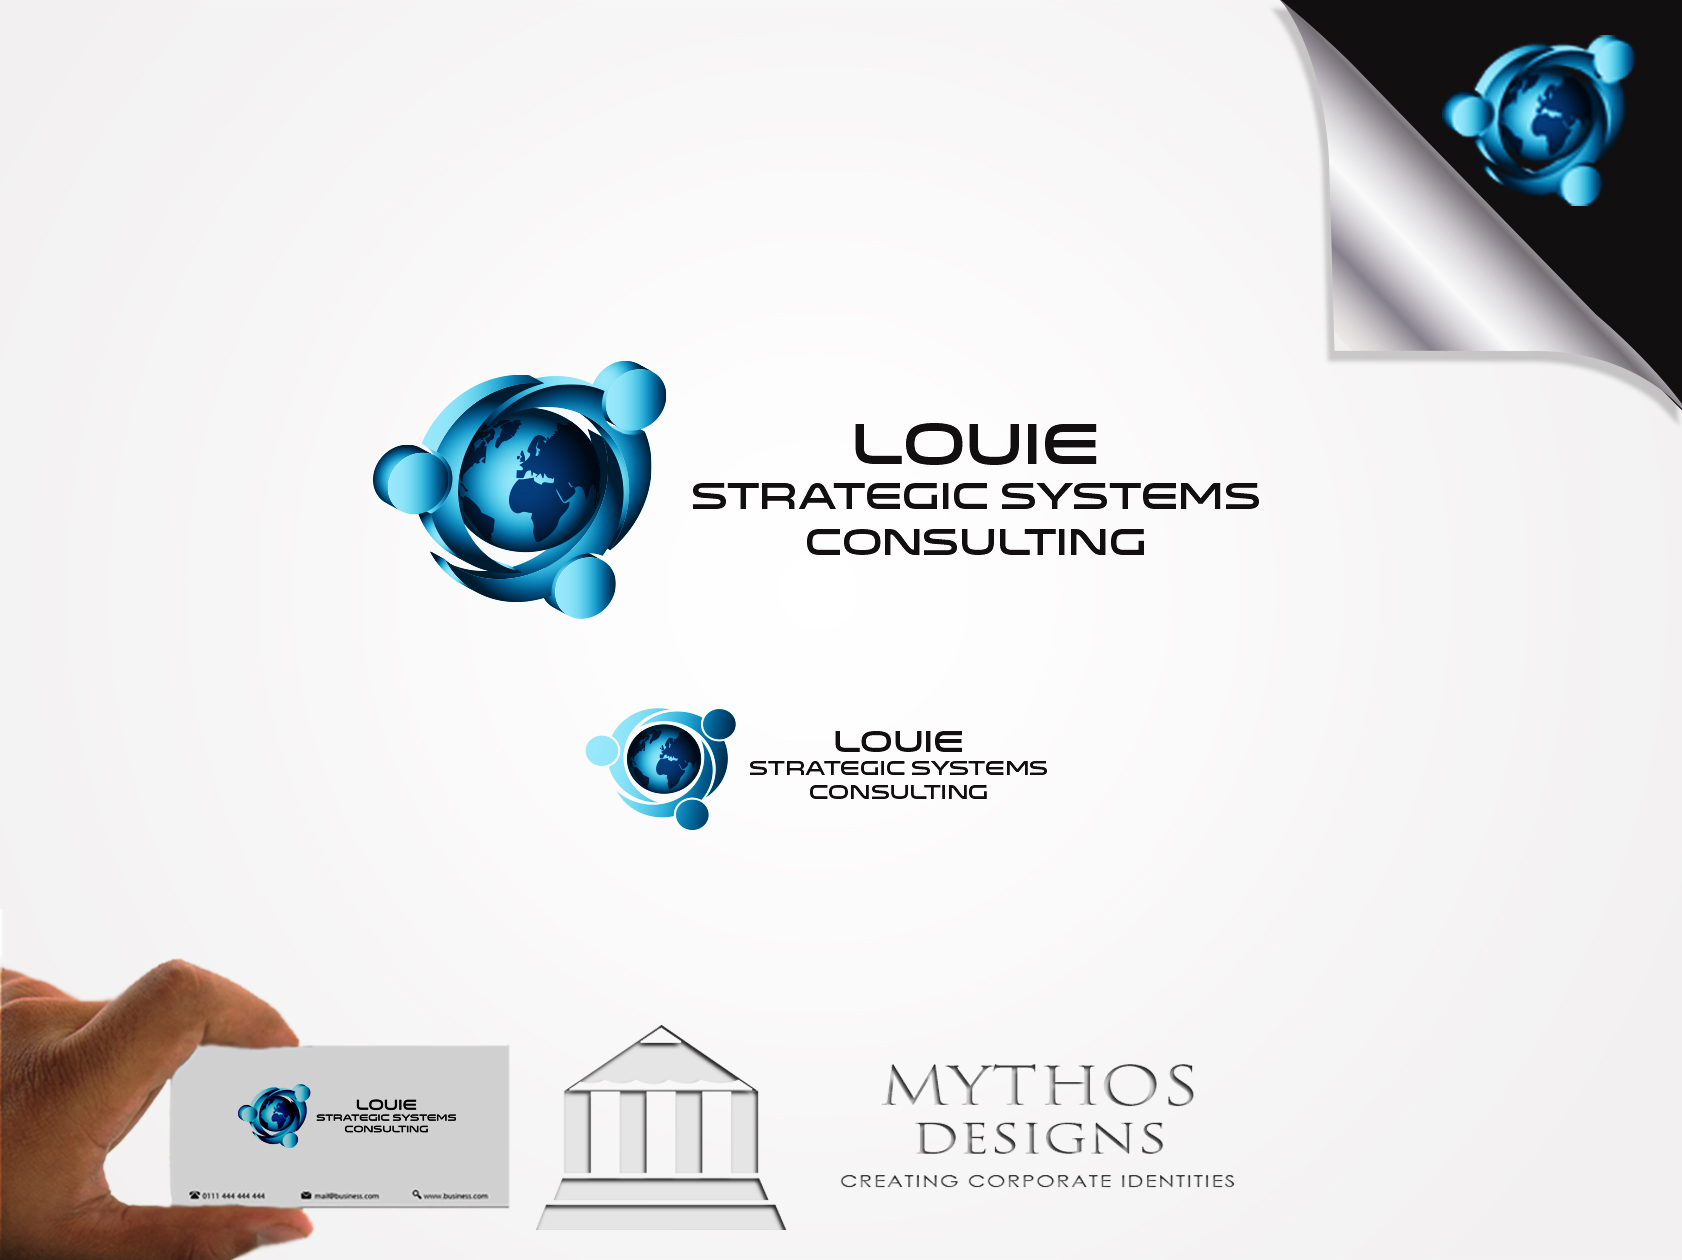 Logo Design by Mythos Designs - Entry No. 137 in the Logo Design Contest Artistic Logo Design for Louie Strategic Systems Consulting.